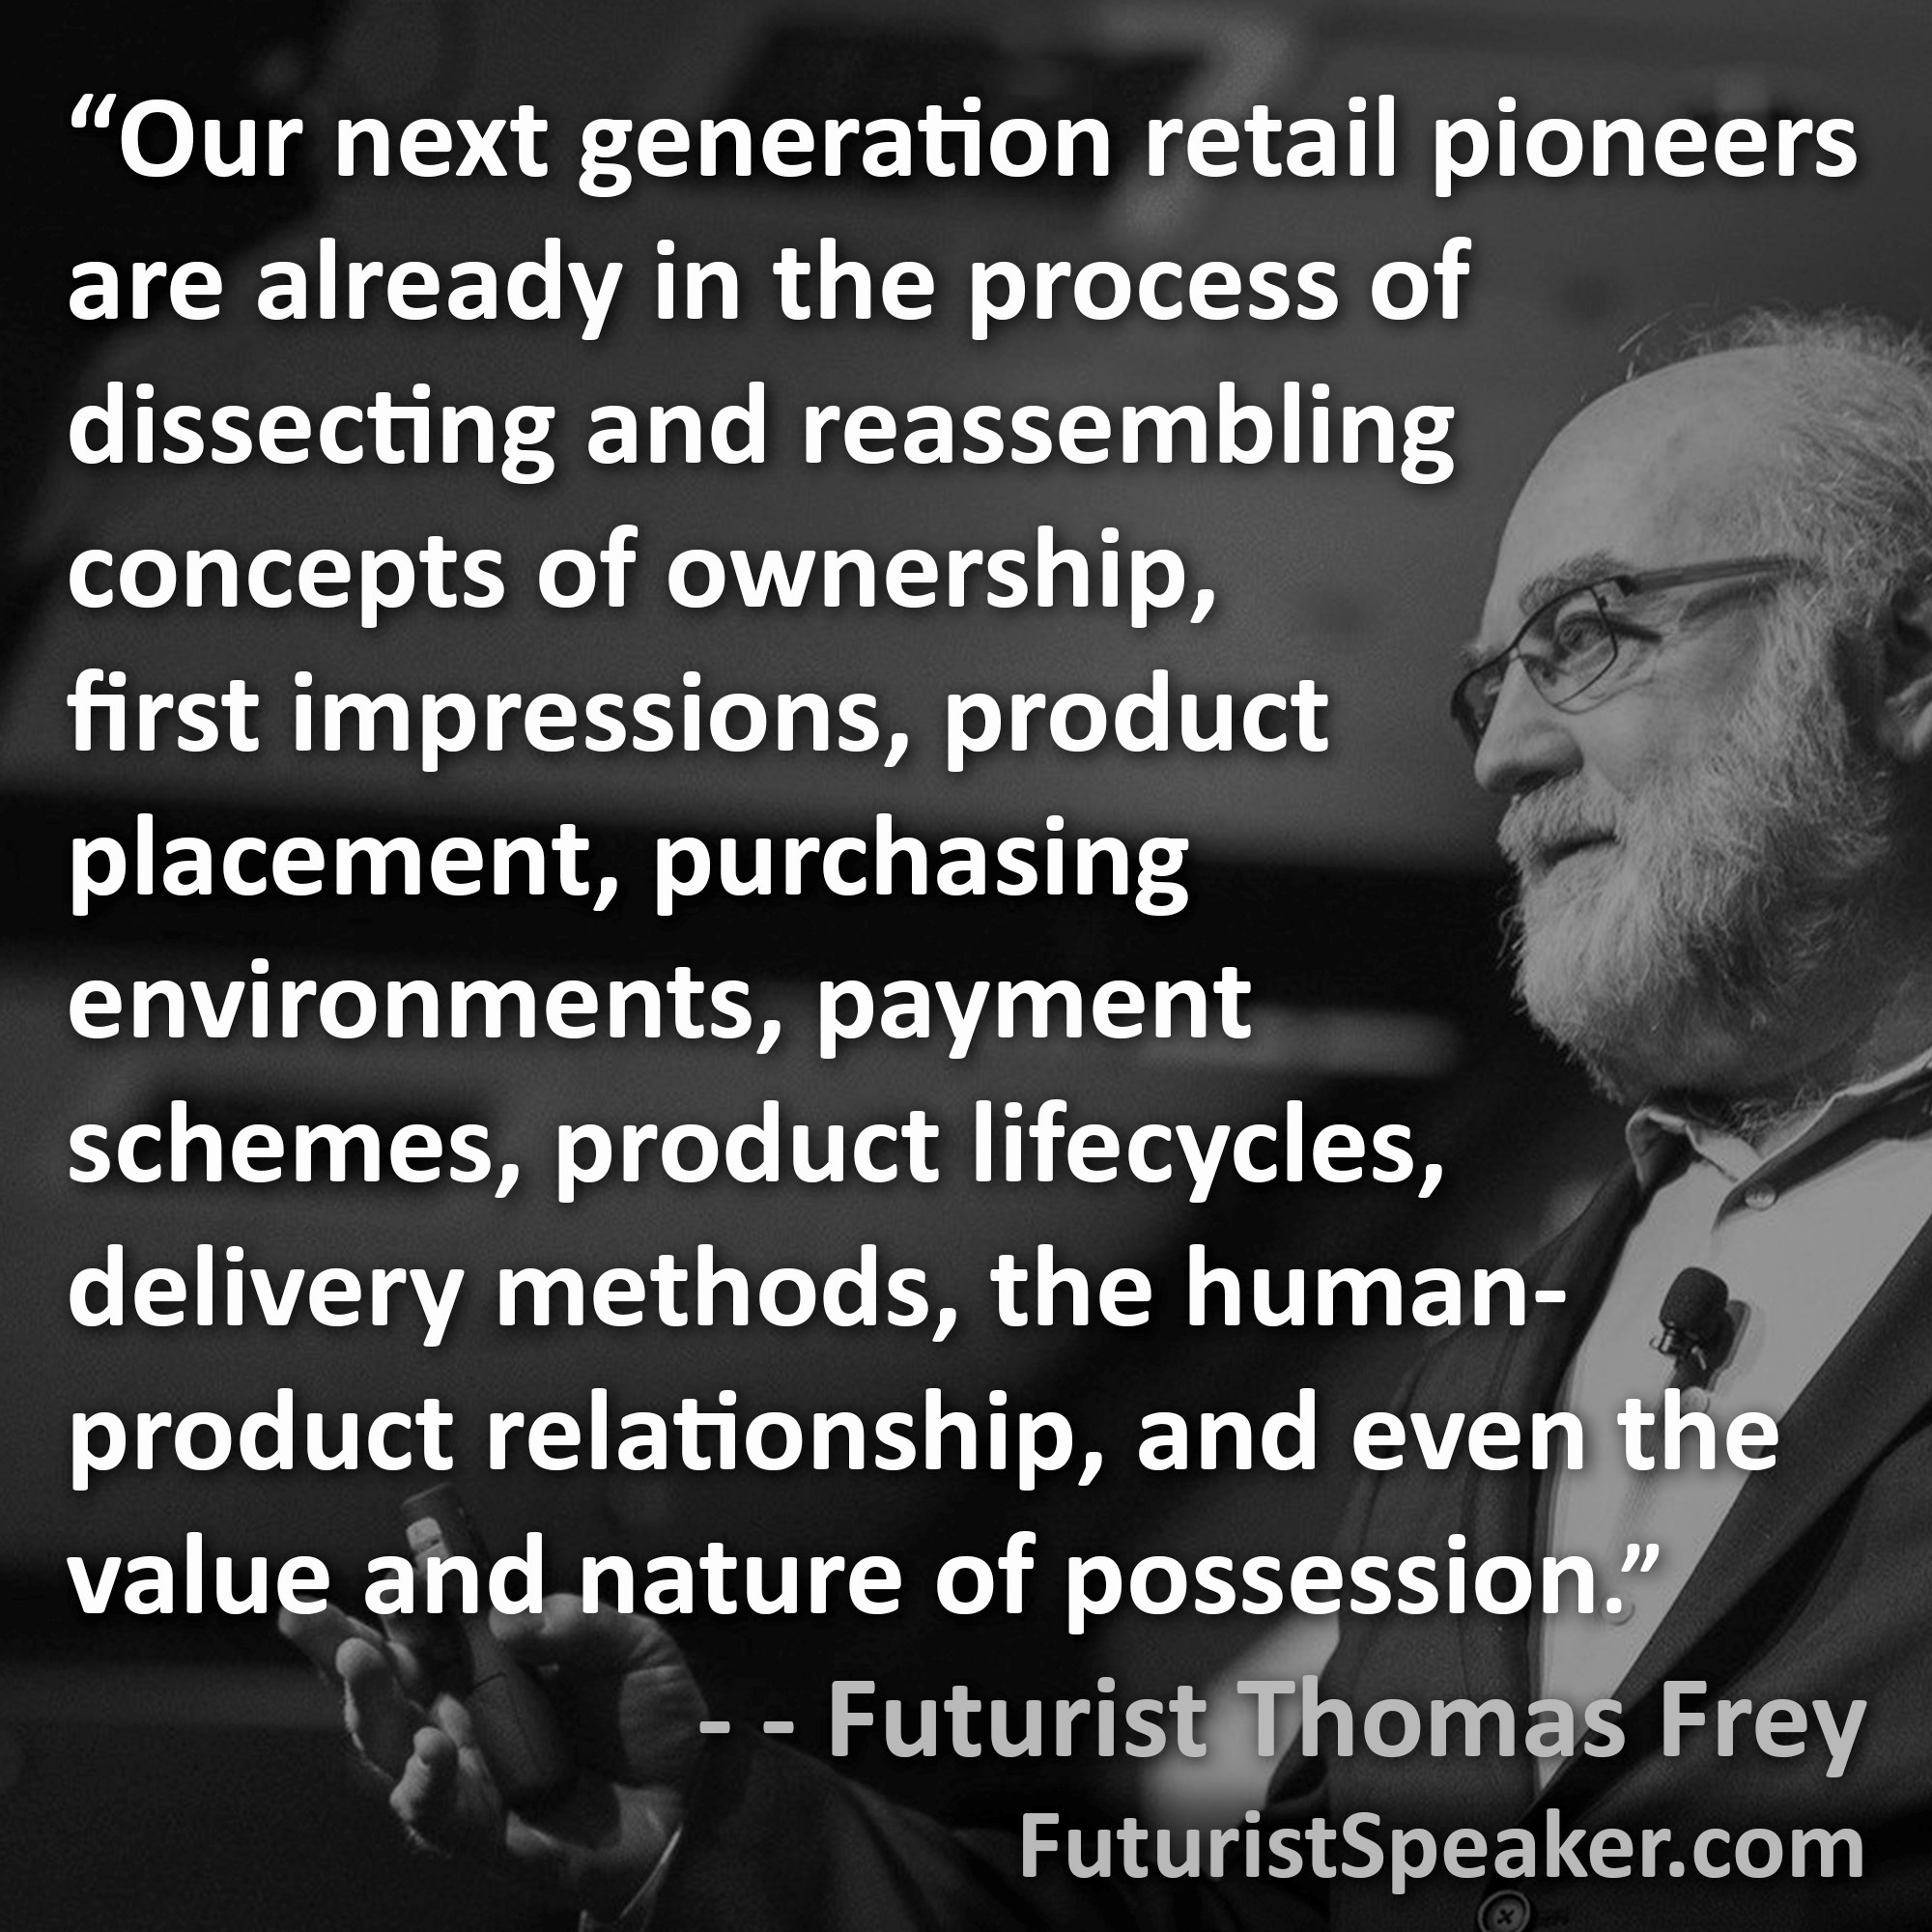 Thomas Frey Futurist Speaker Famous Quote: Our next generation retail pioneers are already in the process of dissecting and reassembling concepts of ownership, first impressions, product placement, purchasing environments, payment schemes, product lifecycles, delivery methods, the human product relationship, and even the value and nature of possession.